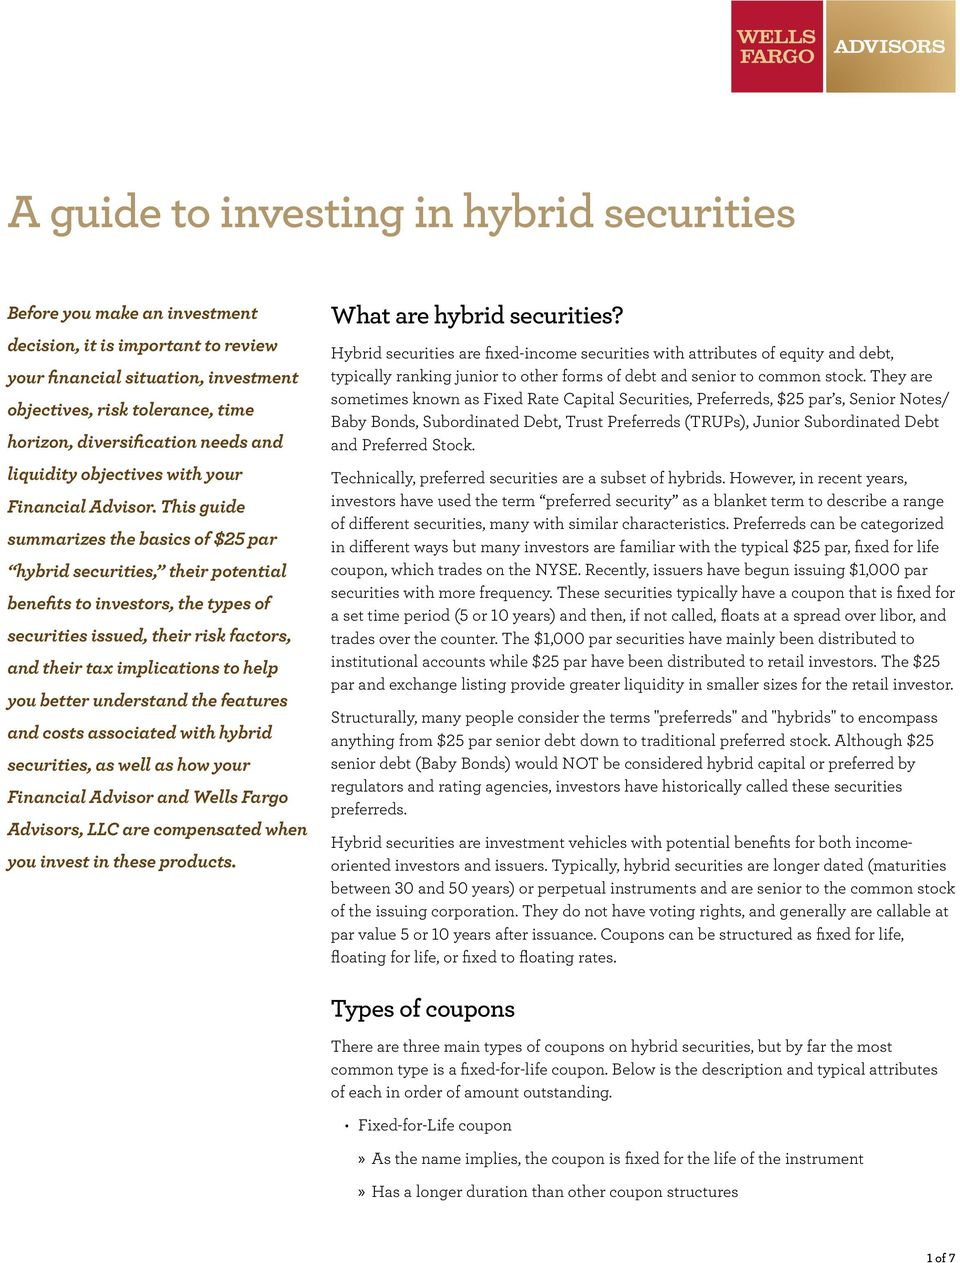 This guide summarizes the basics of $25 par hybrid securities, their potential benefits to investors, the types of securities issued, their risk factors, and their tax implications to help you better